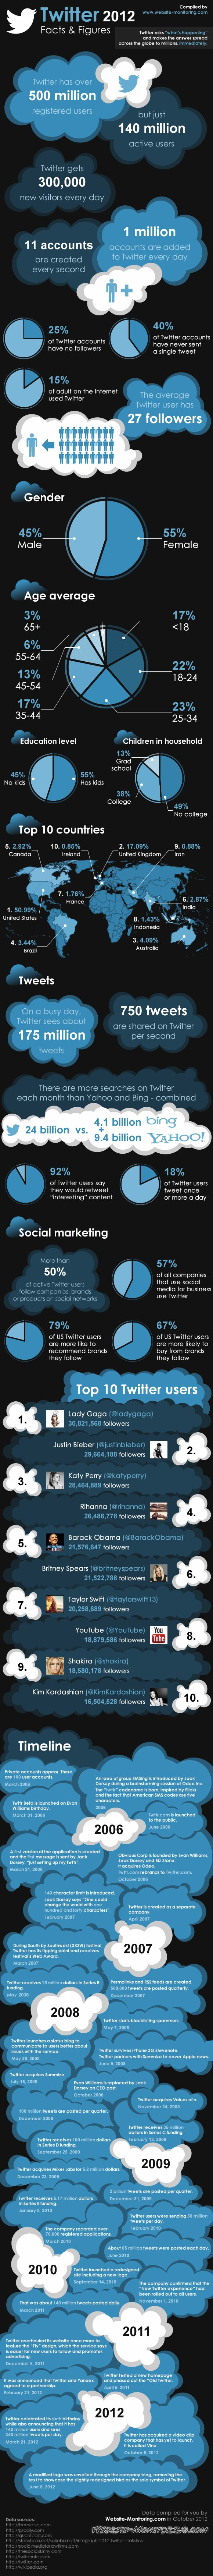 Twitter #facts and figures 2012